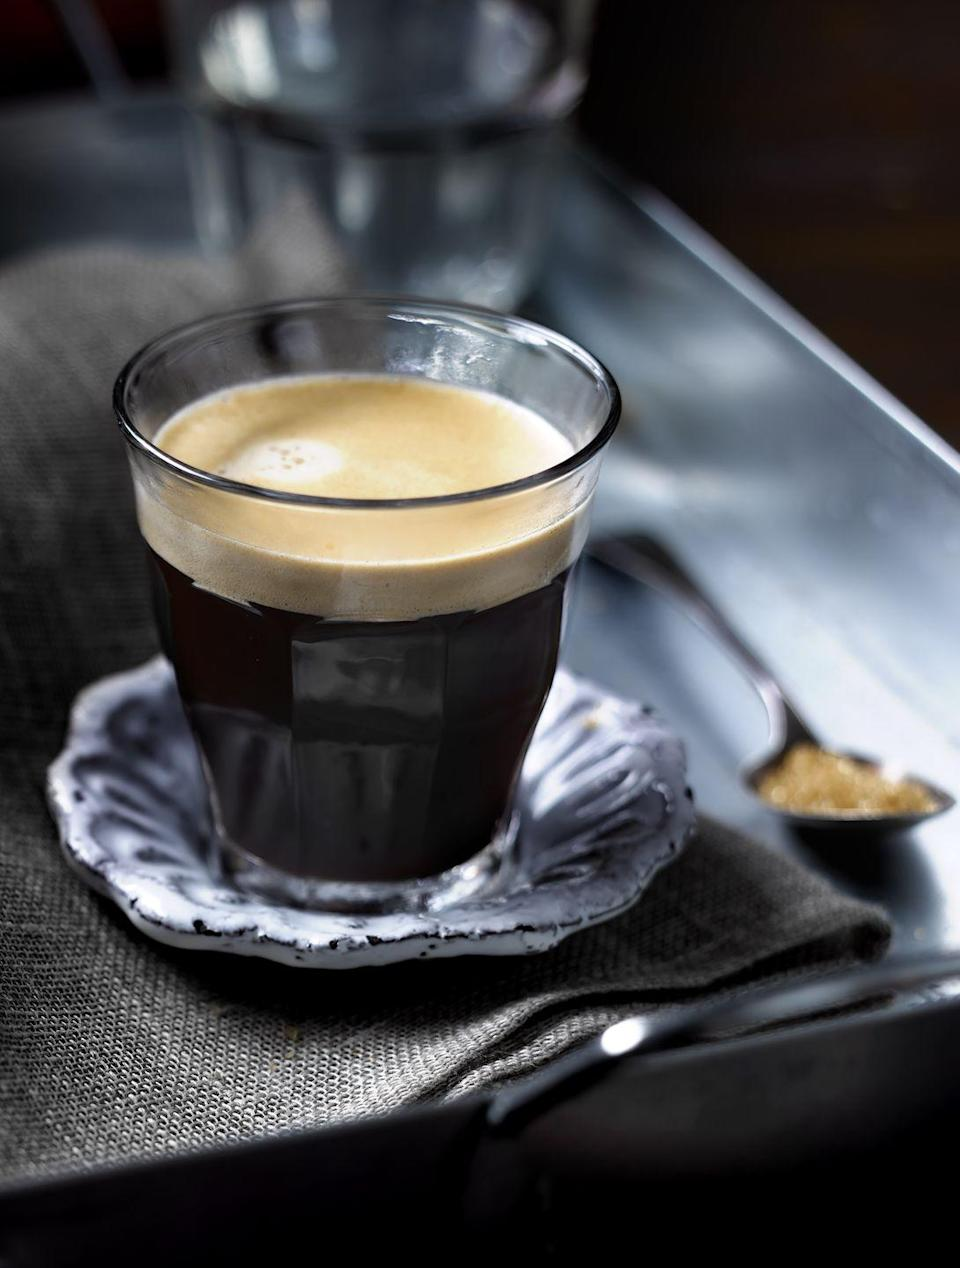 "<p>Although the history is debated, the cafe Americano is so called because it's how American GIs would order their espresso from Italian cafes during WWII—a shot of espresso with water added to mimic drip coffee. </p><p><strong>Pro tip:</strong> There are no hard rules about preparing this drink, but the strongest version is simply equal parts espresso and hot water. </p><p><em><a href=""https://go.redirectingat.com?id=74968X1596630&url=https%3A%2F%2Fwww.illy.com%2Fen-us%2Fcoffee%2Fcoffee-recipes%2Famericano-coffee&sref=https%3A%2F%2Fwww.goodhousekeeping.com%2Ffood-recipes%2Fg35012036%2Fbest-coffee-recipes%2F"" rel=""nofollow noopener"" target=""_blank"" data-ylk=""slk:Get the recipe for Americano from Illy »"" class=""link rapid-noclick-resp"">Get the recipe for Americano from Illy » </a></em></p>"